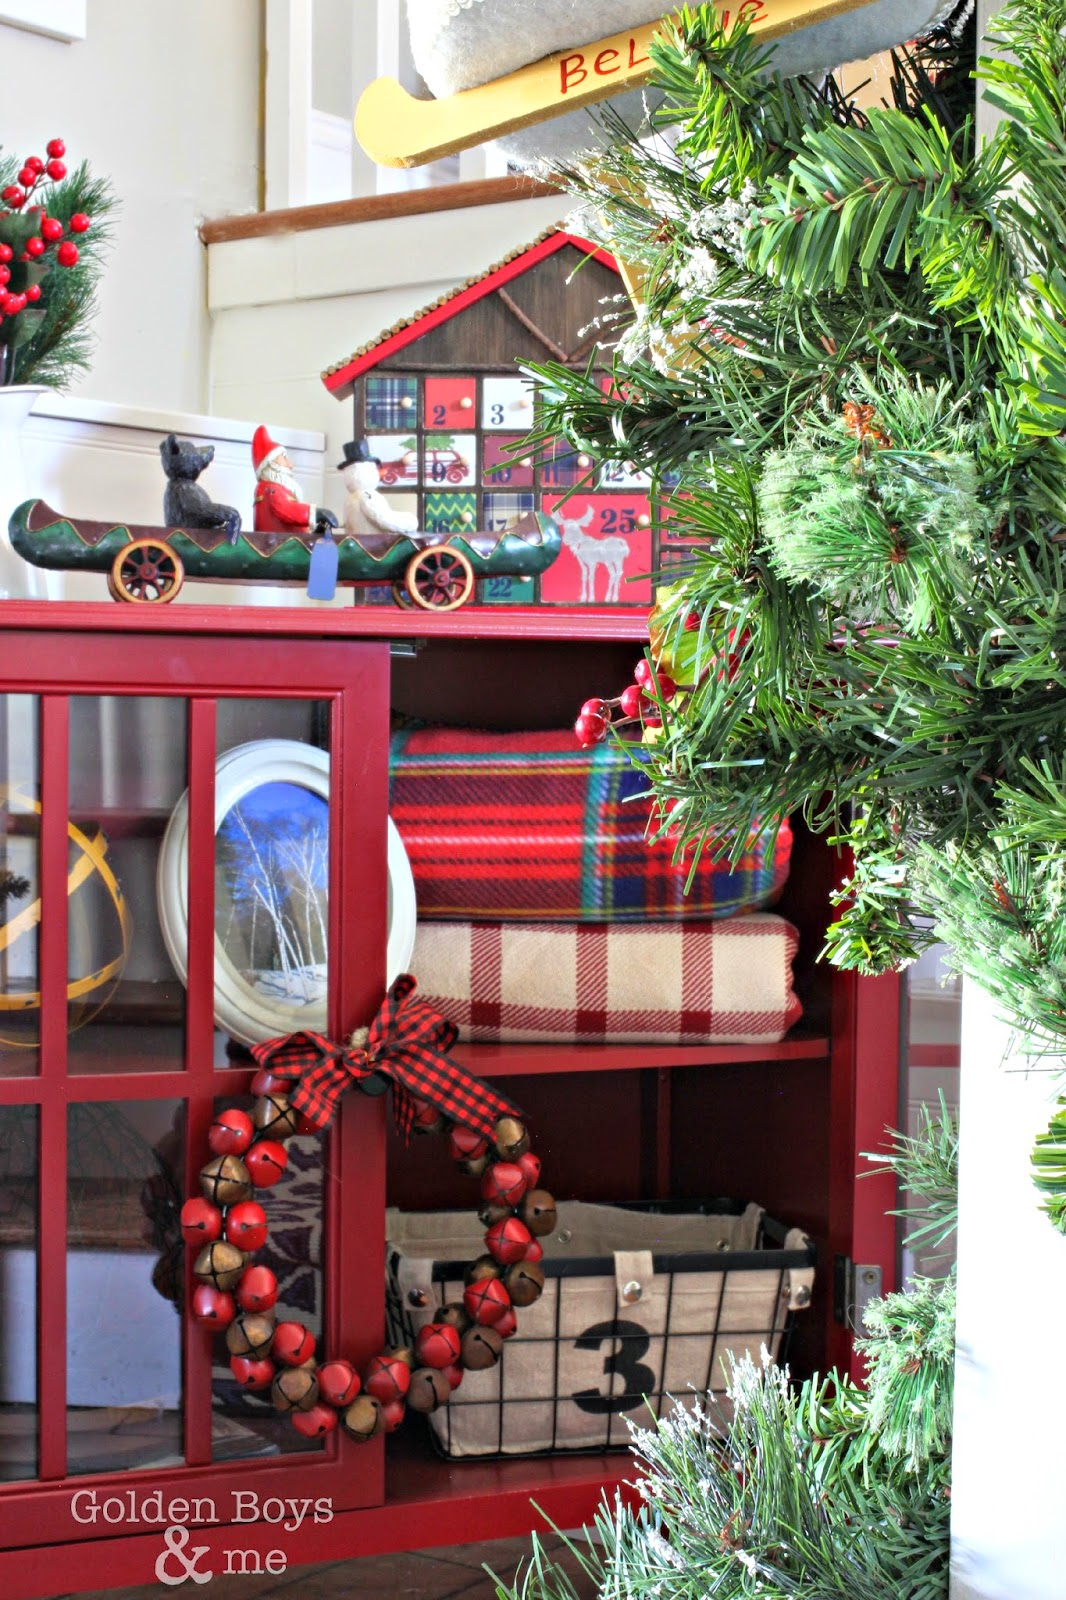 Target red windham bookcase with plaid blankets in rustic Christmas entryway-www.goldenboysandme.com